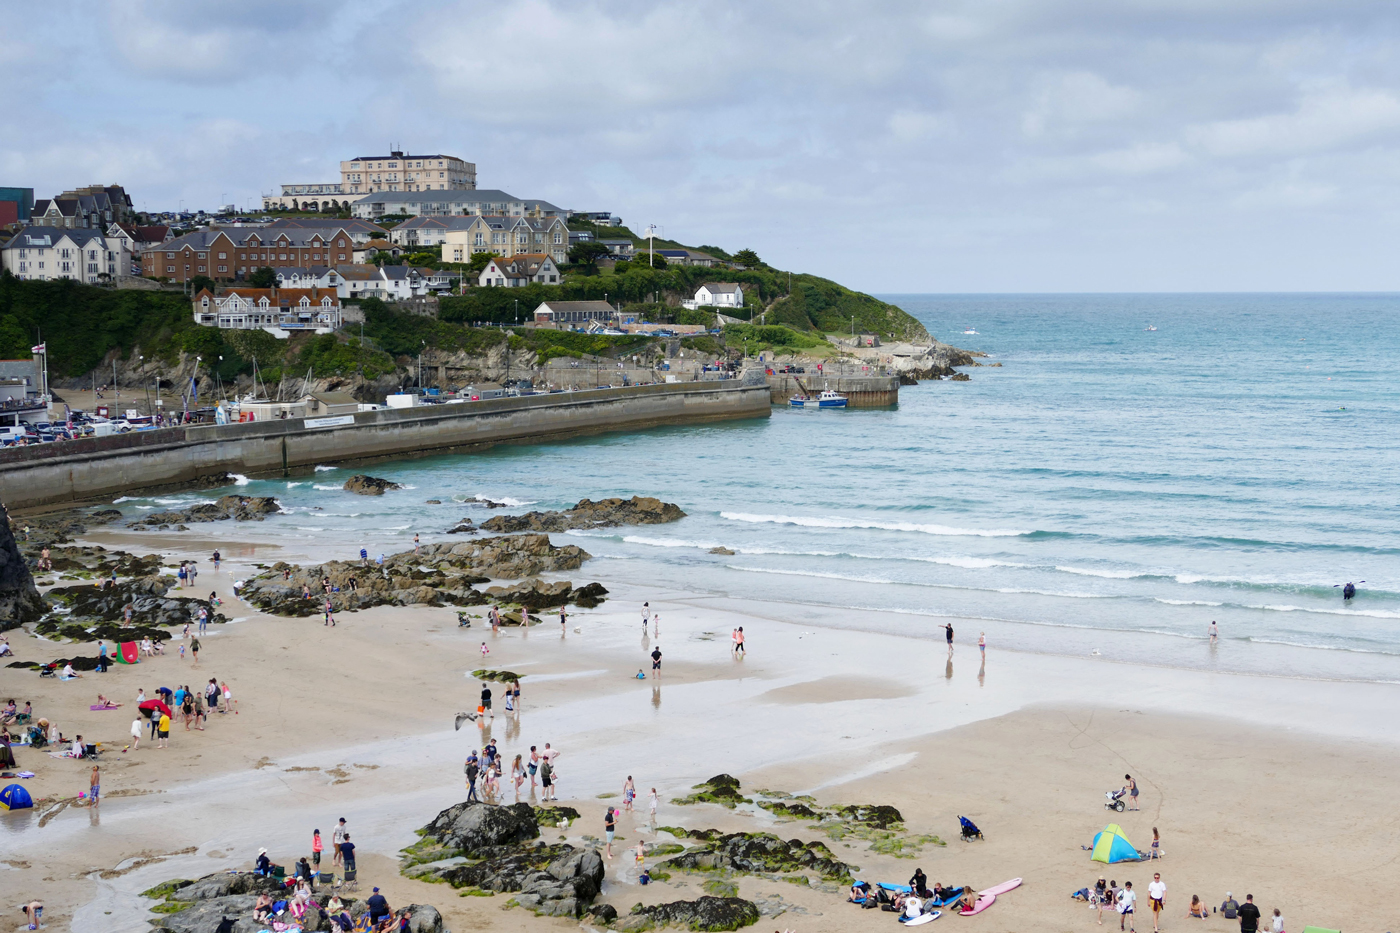 A busy beach in Newquay